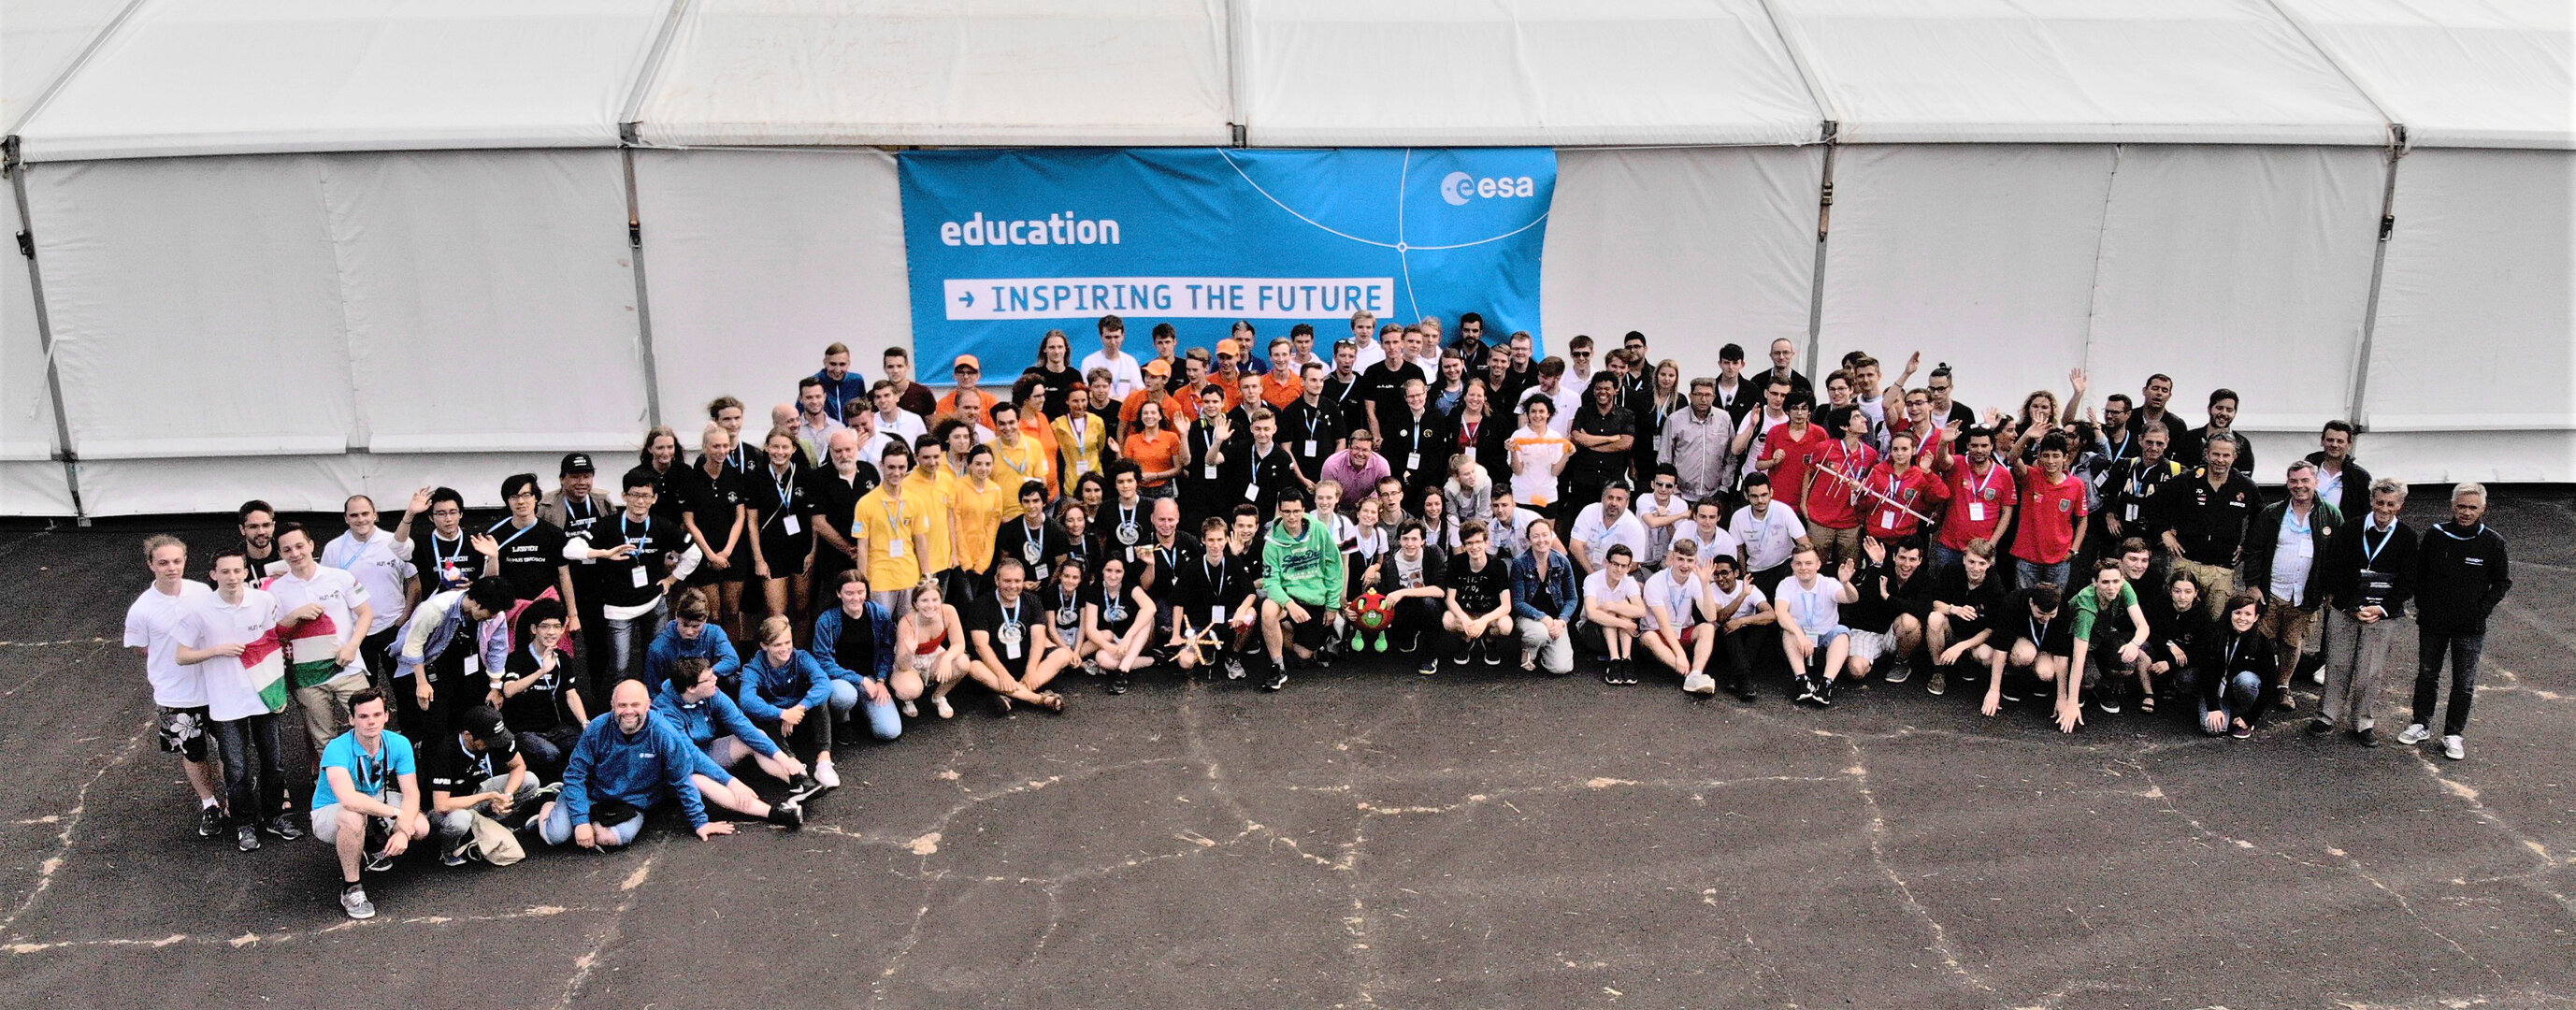 European Cansat Competition 2018 - group photo